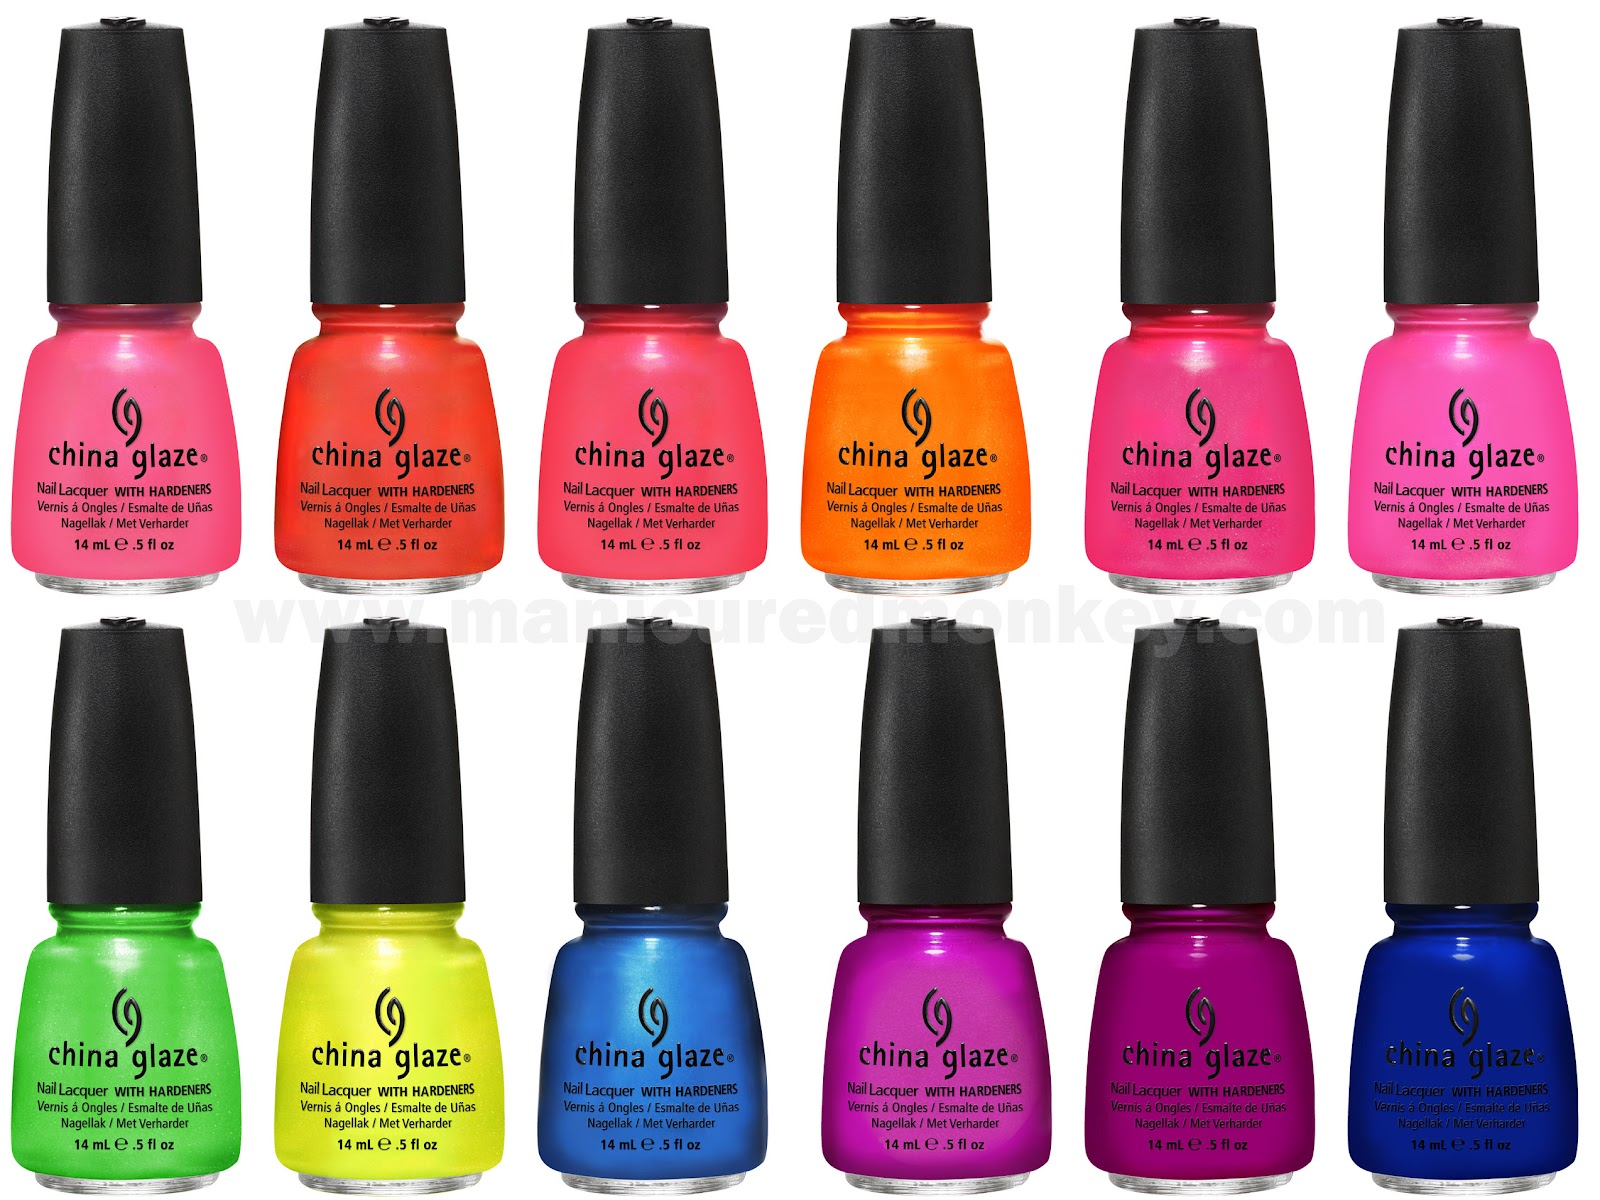 China glazes hot hues summer neons nail lacquer collection china glazes hot hues summer neons nail lacquer collection nvjuhfo Gallery